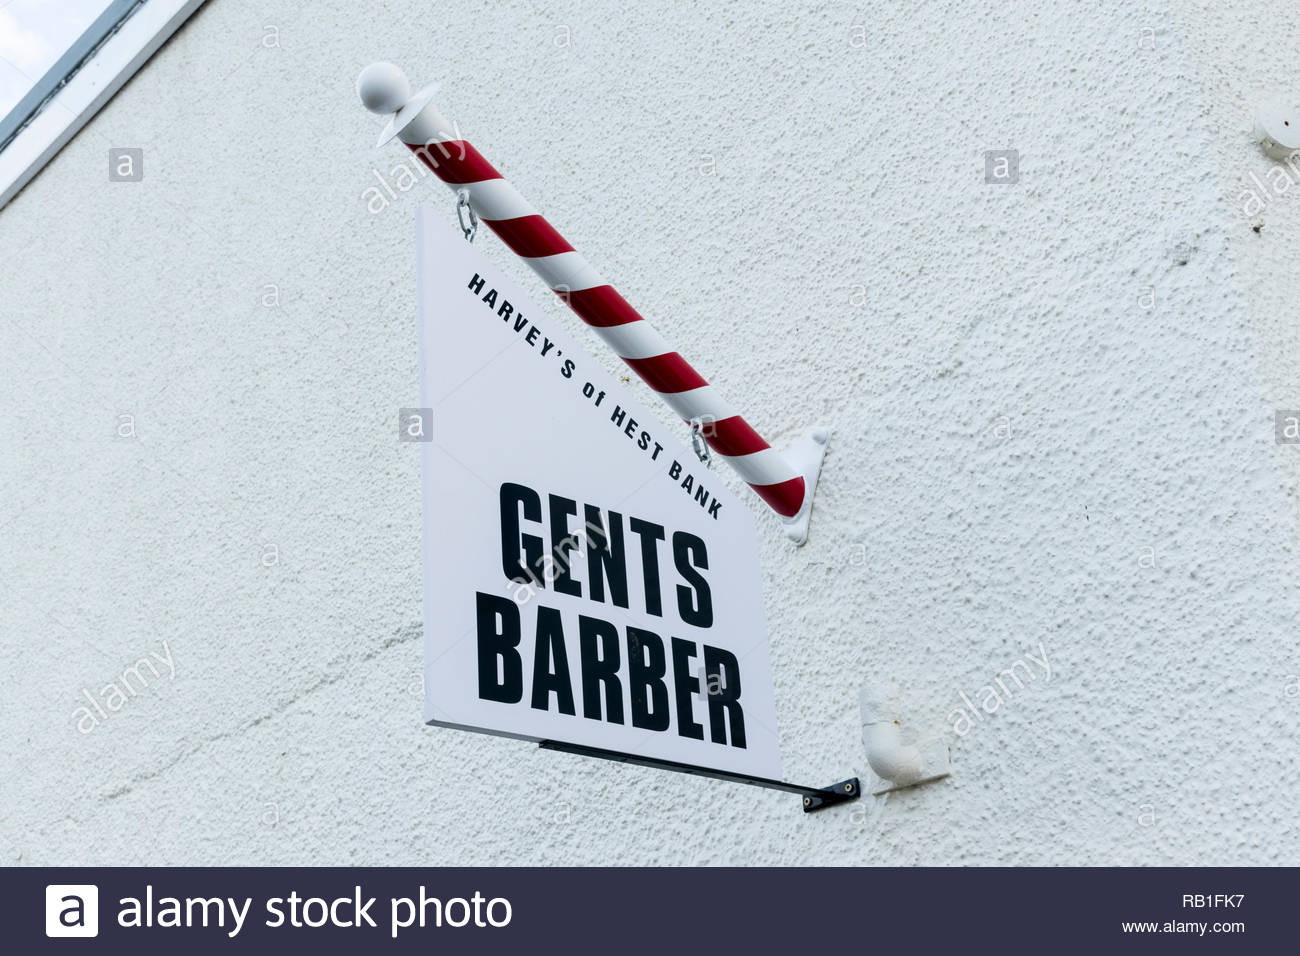 A sign for a gents barber shop with a red and white barber pole in Hest Bank, Lancashire, England, UK - Stock Image